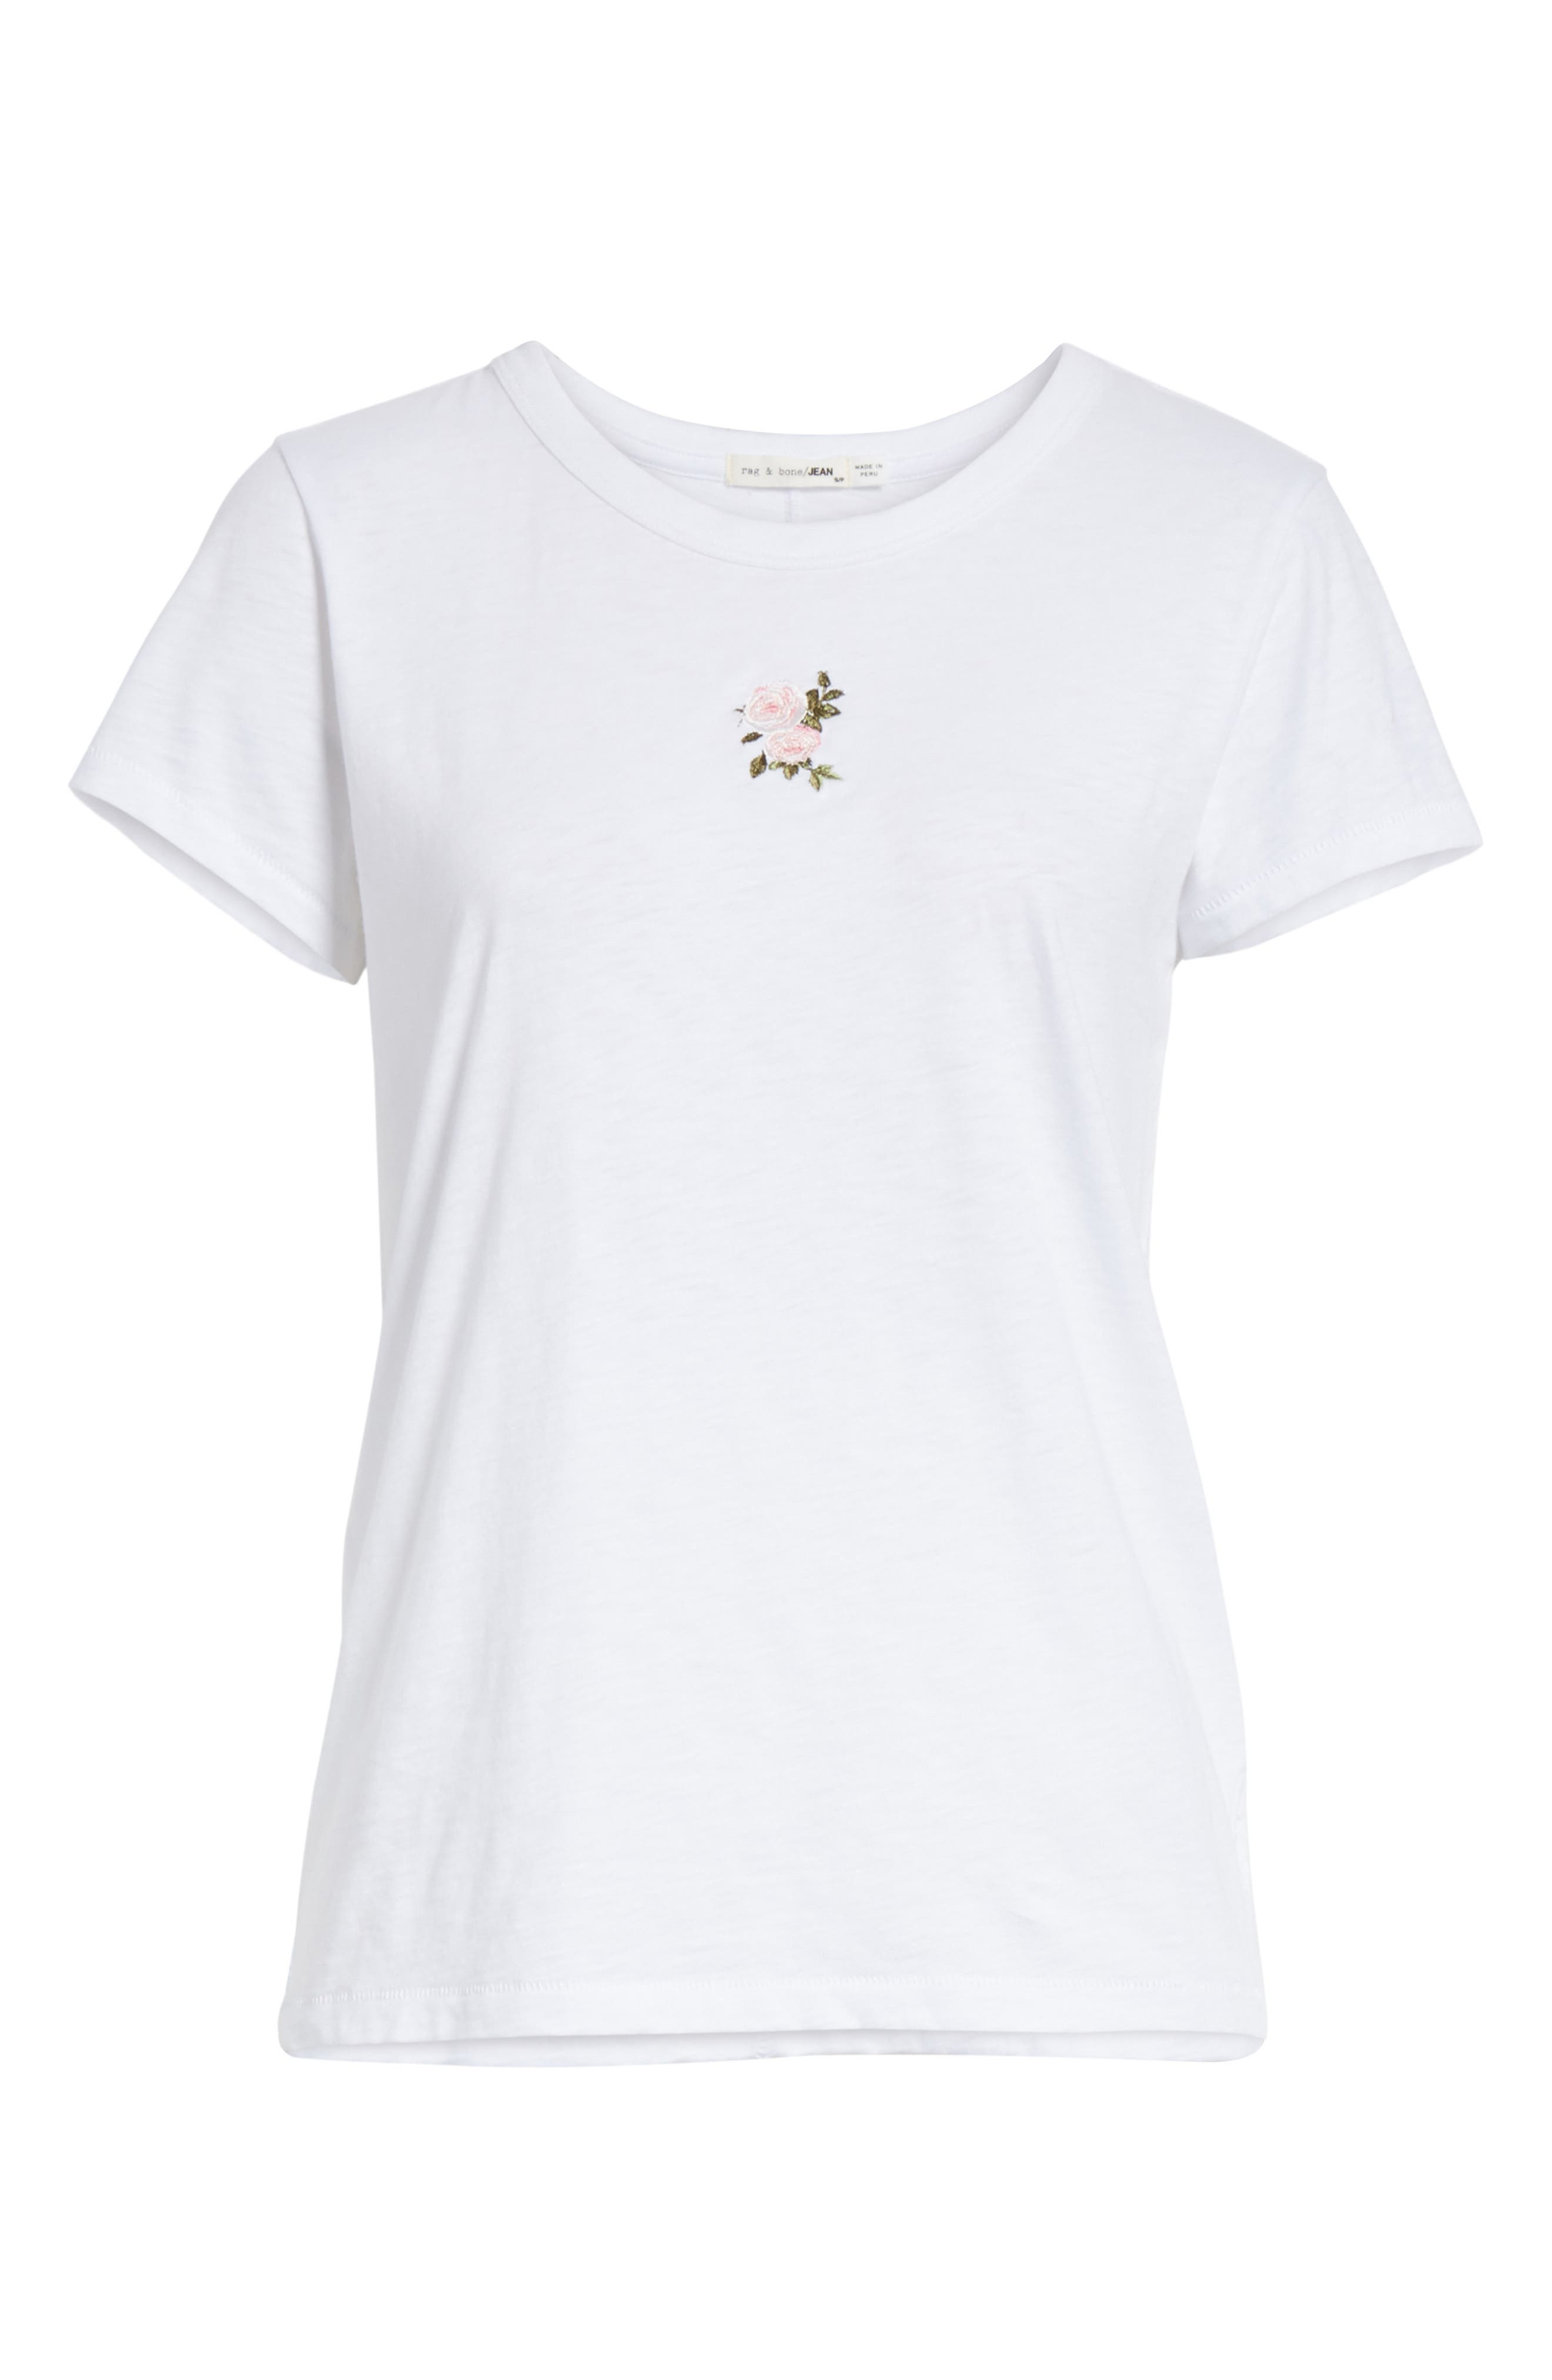 Rose Embroidered Tee,                             Alternate thumbnail 6, color,                             White